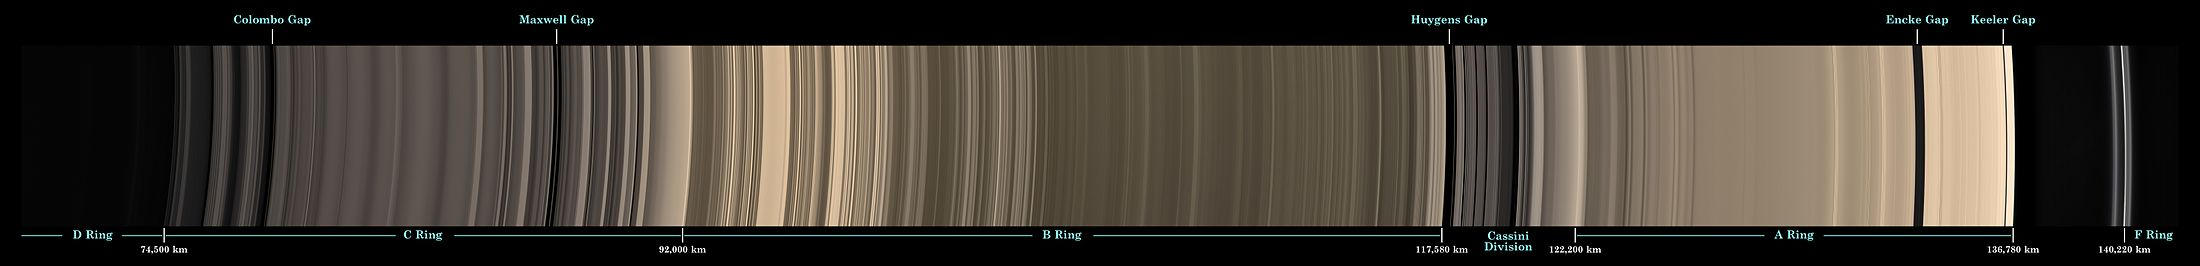 Natural-color mosaic of Cassini narrow-angle camera images of the unilluminated side of Saturn's D, C, B, A and F rings (left to right) taken on May 9, 2007.